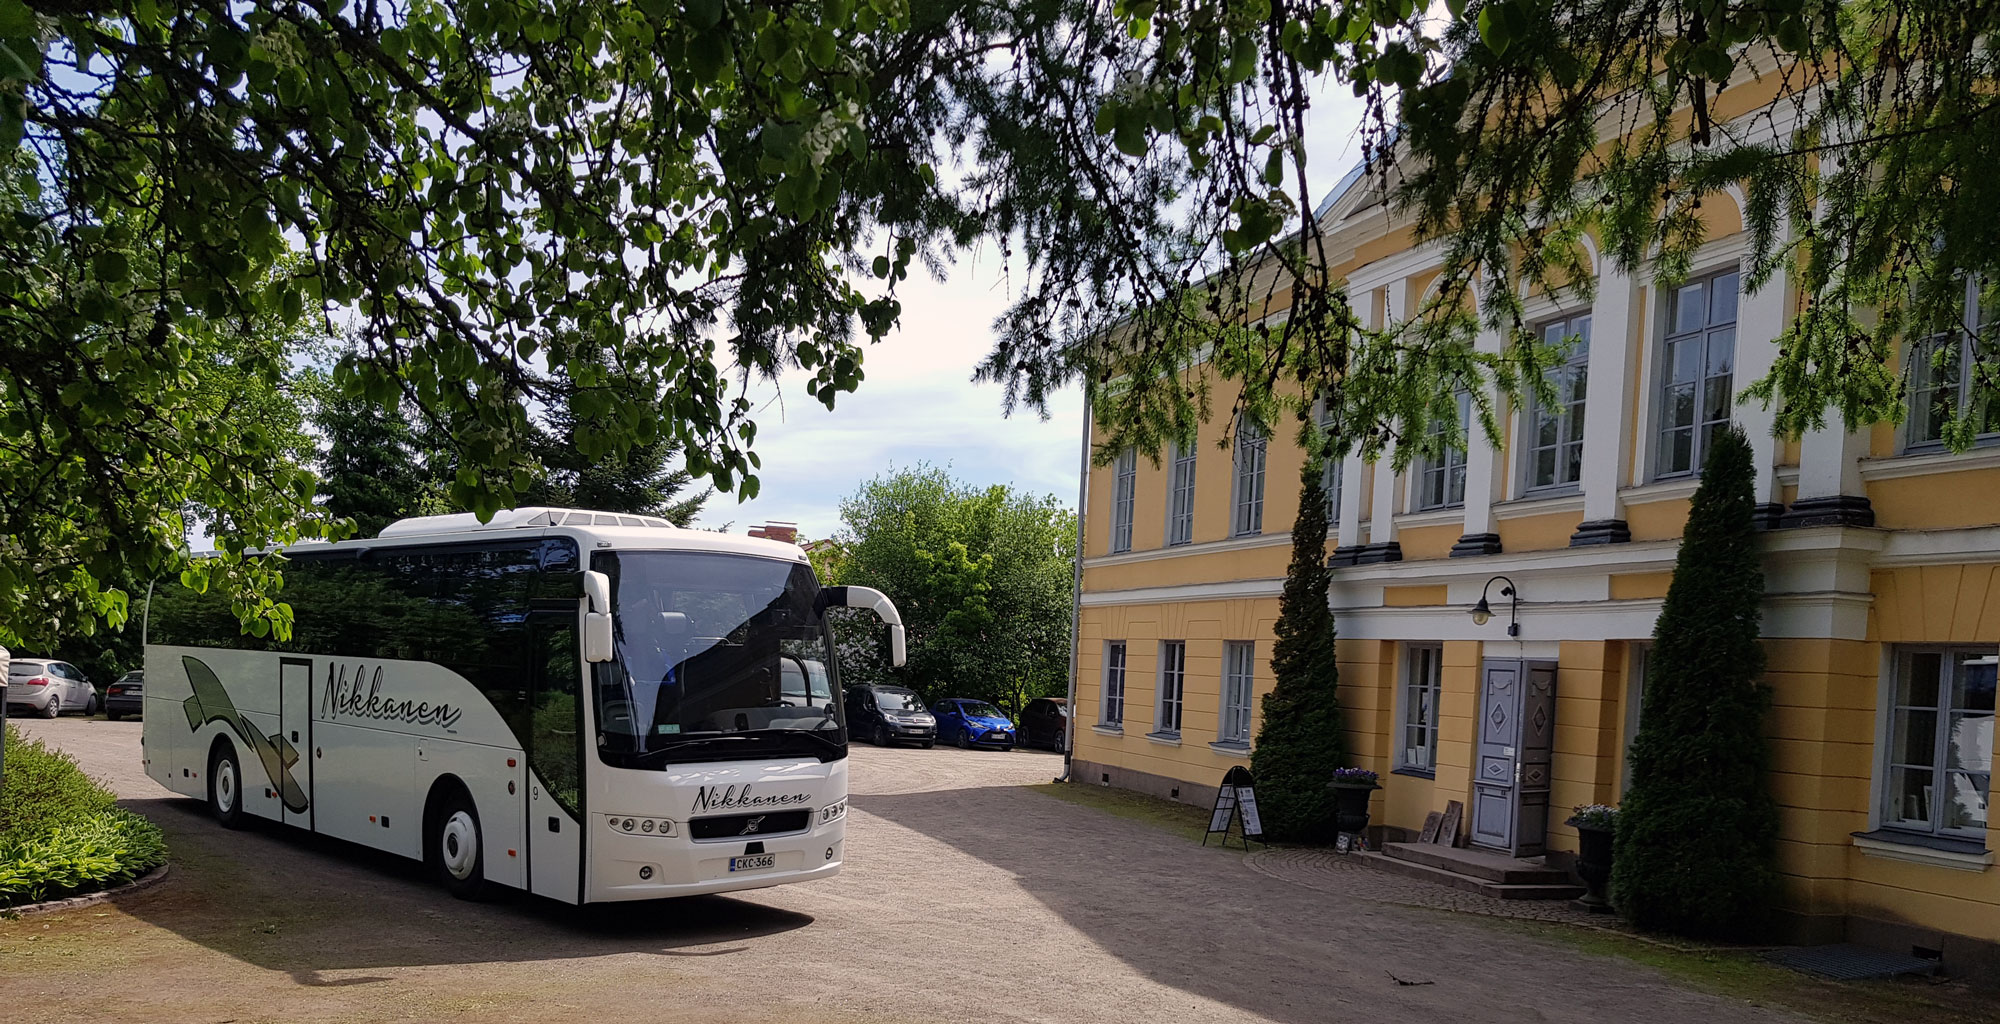 Charter for 1-50 people  in Helsinki Finland area